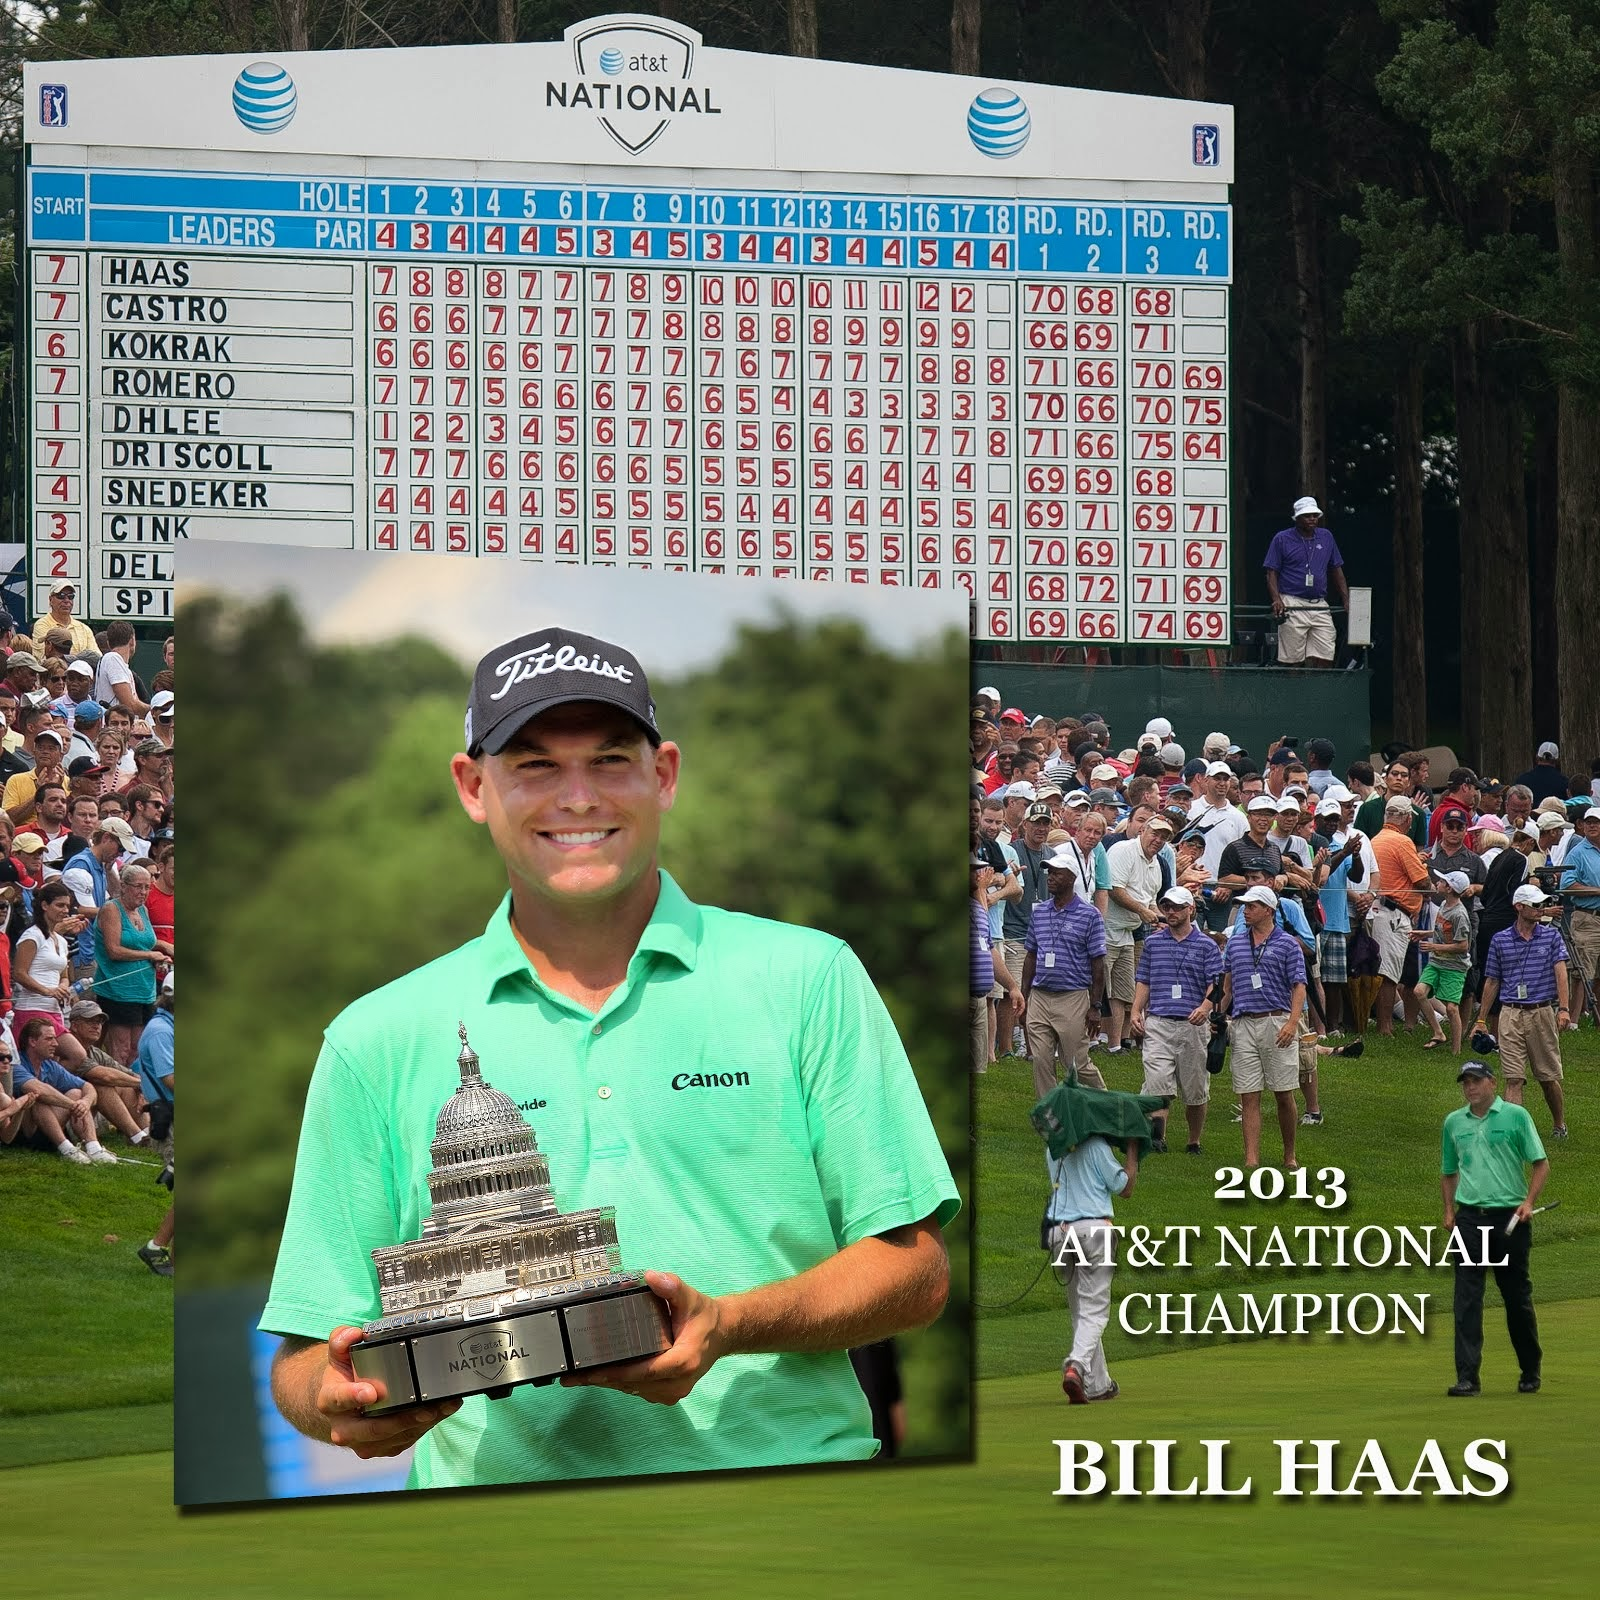 Bill Haas taking the walk down 18 to get the trophy!